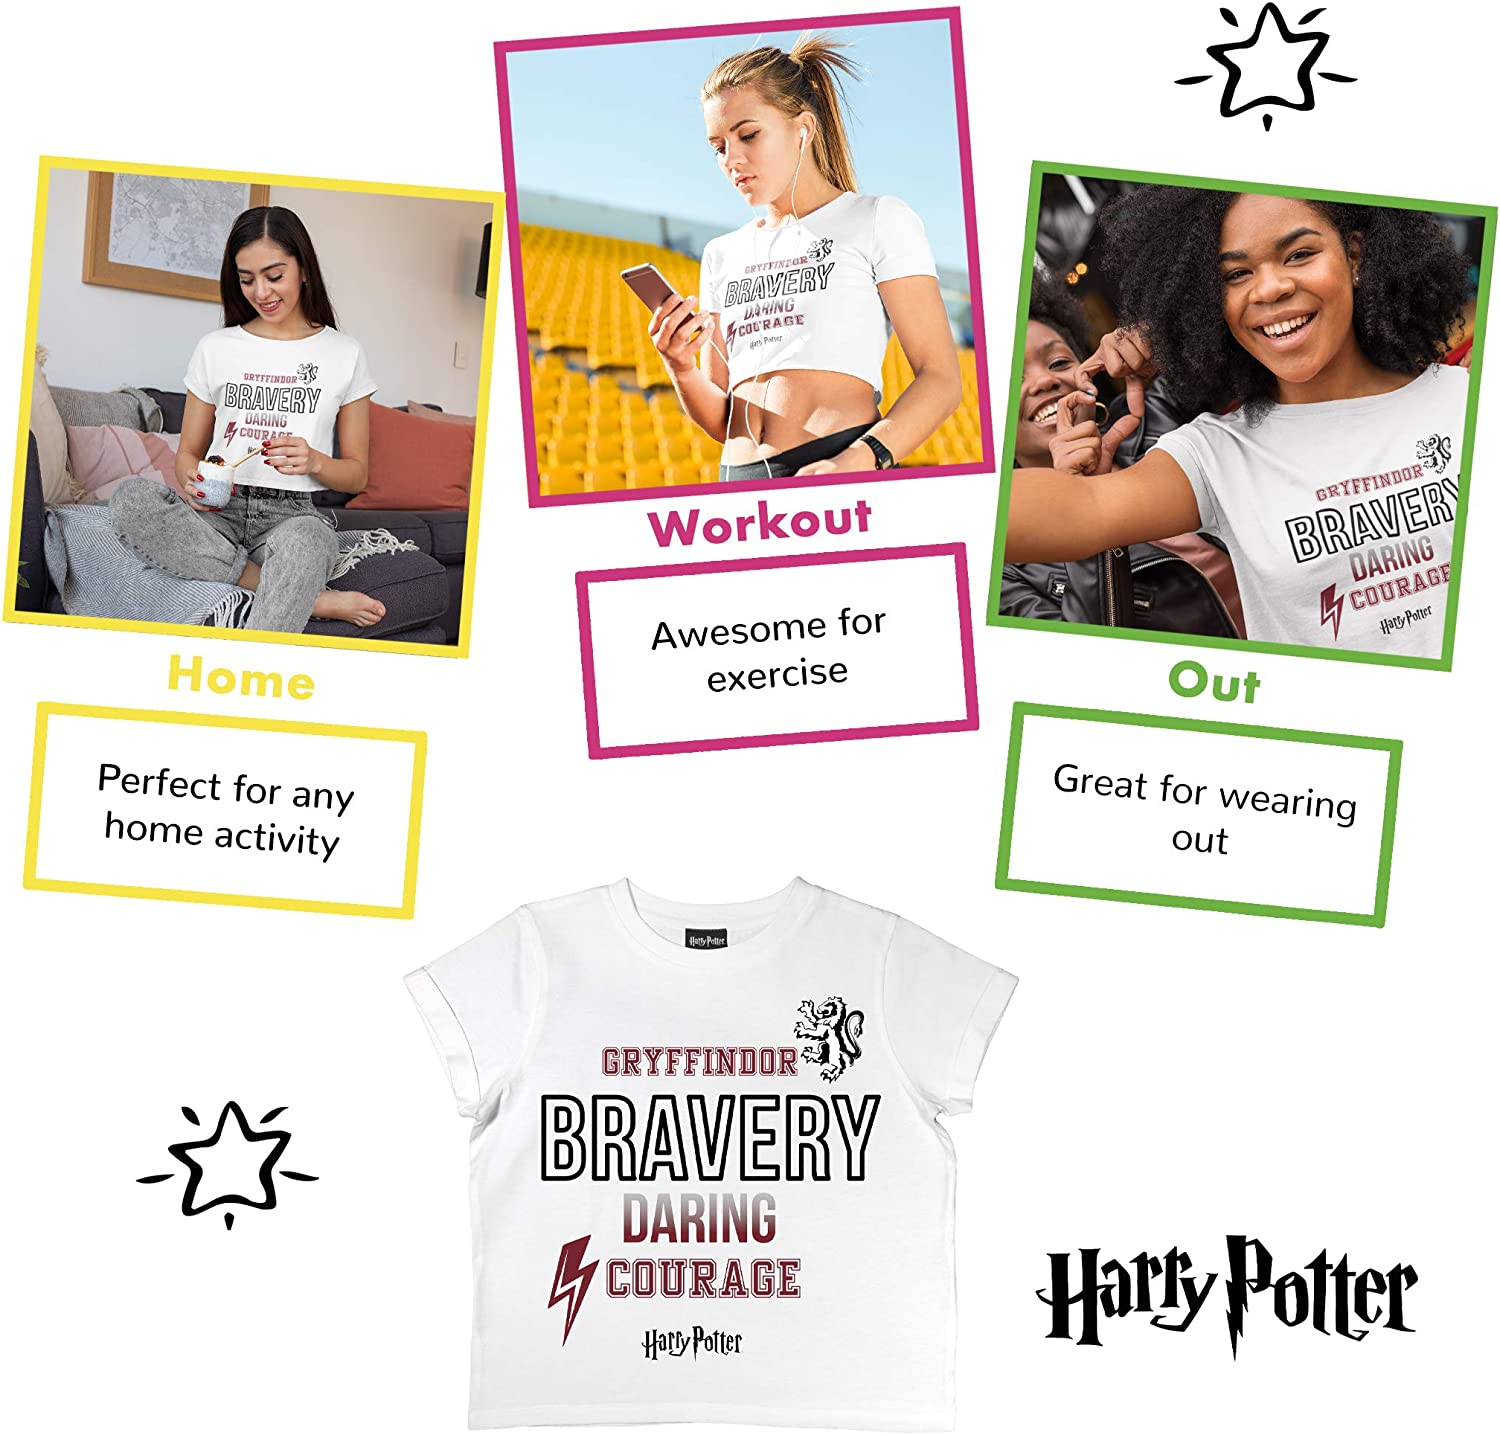 Harry Potter Gifts Kids Birthday Gift Idea Ages 10-13 Girls Fashion Crop Top Official Merchandise Harry Potter Gryffindor Bravery Girls Cropped T-Shirt Childrens Clothes